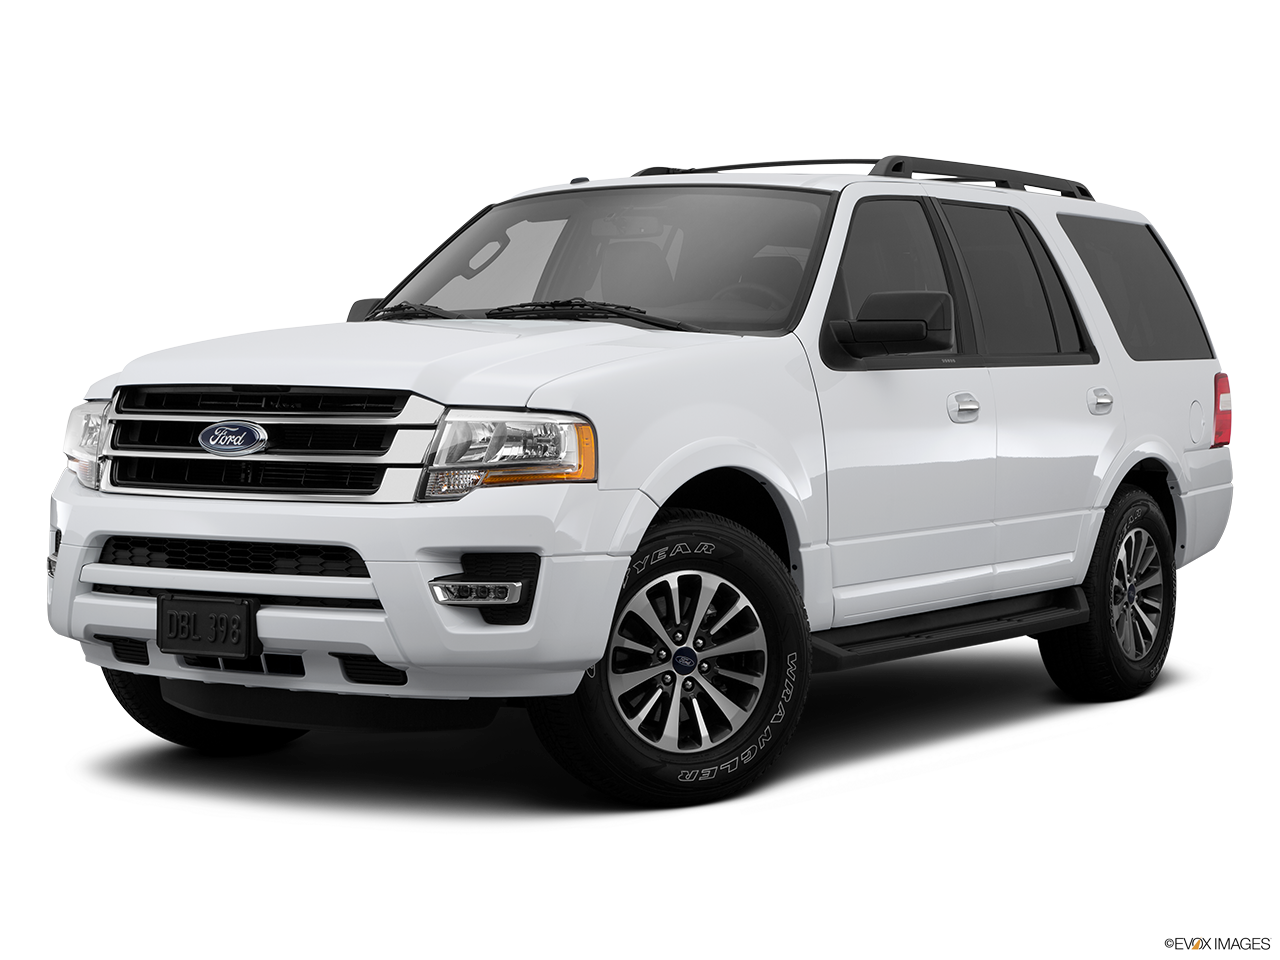 Test Drive A 2015 Ford Expedition at Doenges Ford in Tulsa